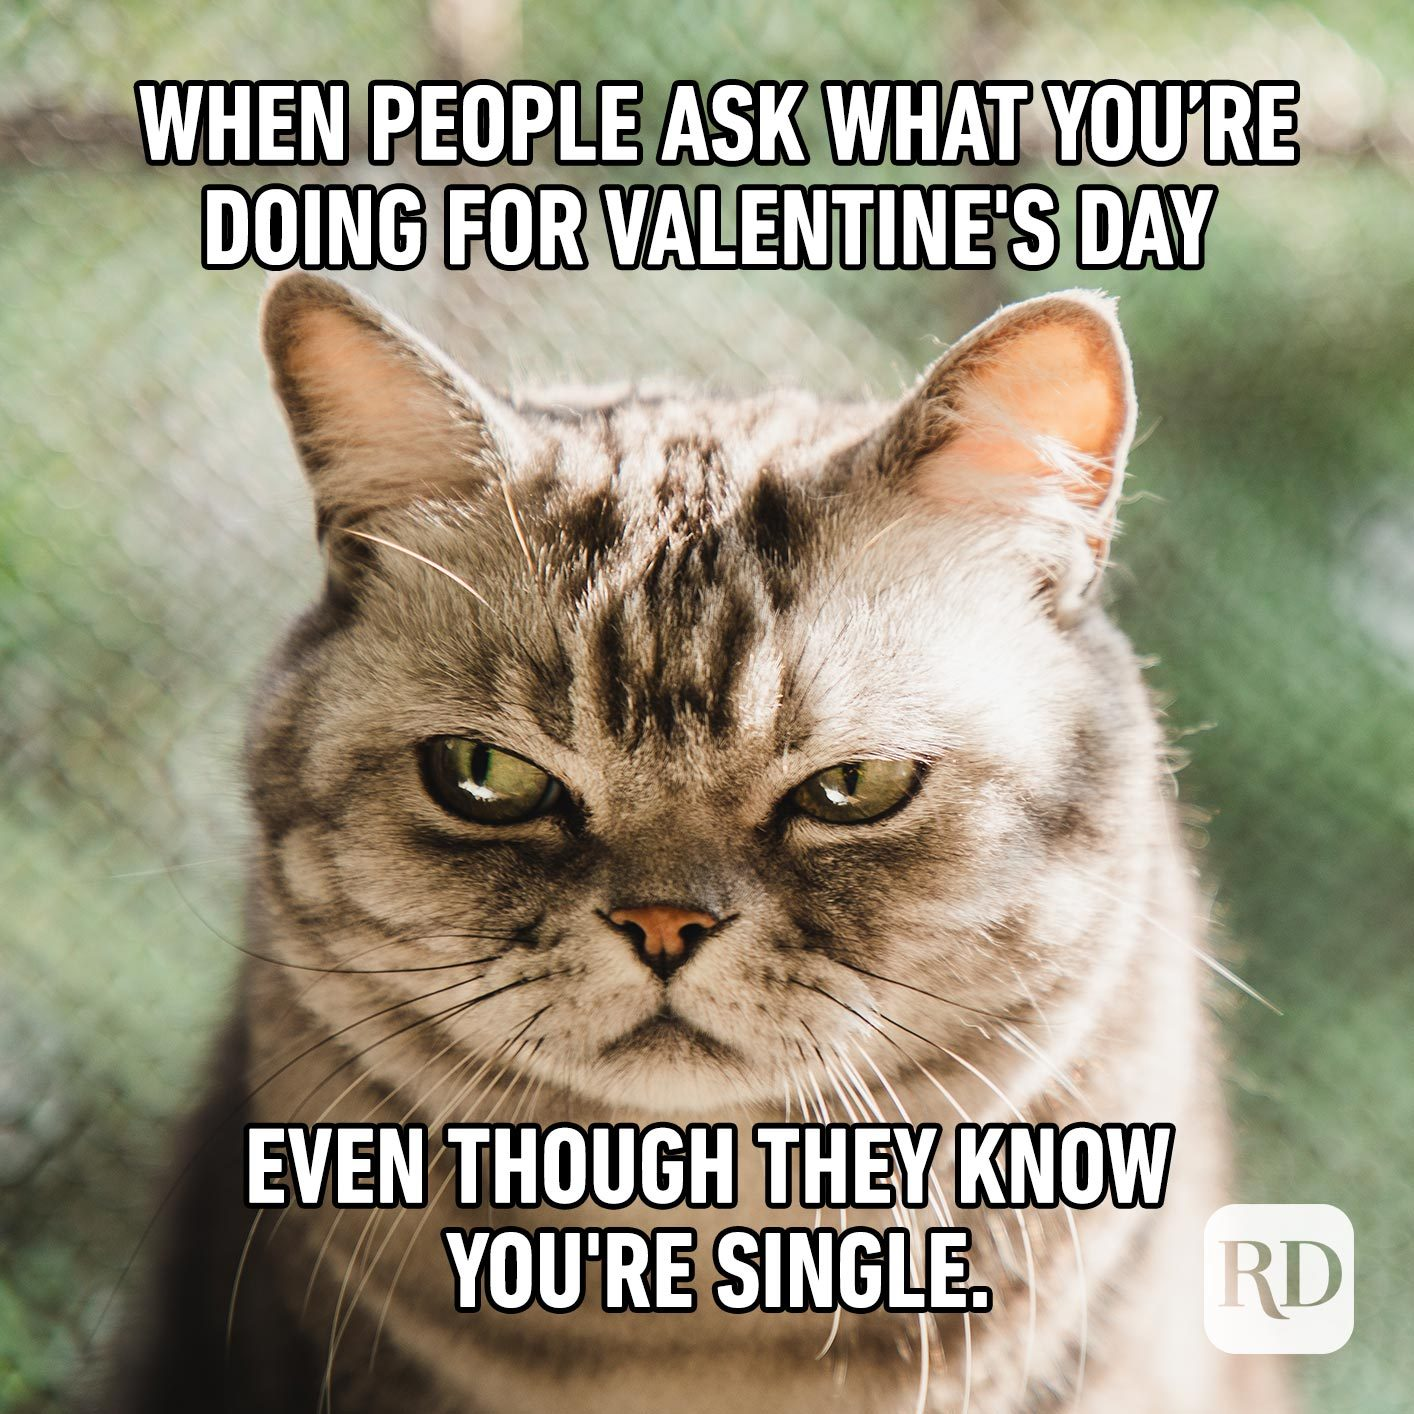 Furious cat. Meme text: When people ask what you're doing for Valentine's Day even though they know you're single.